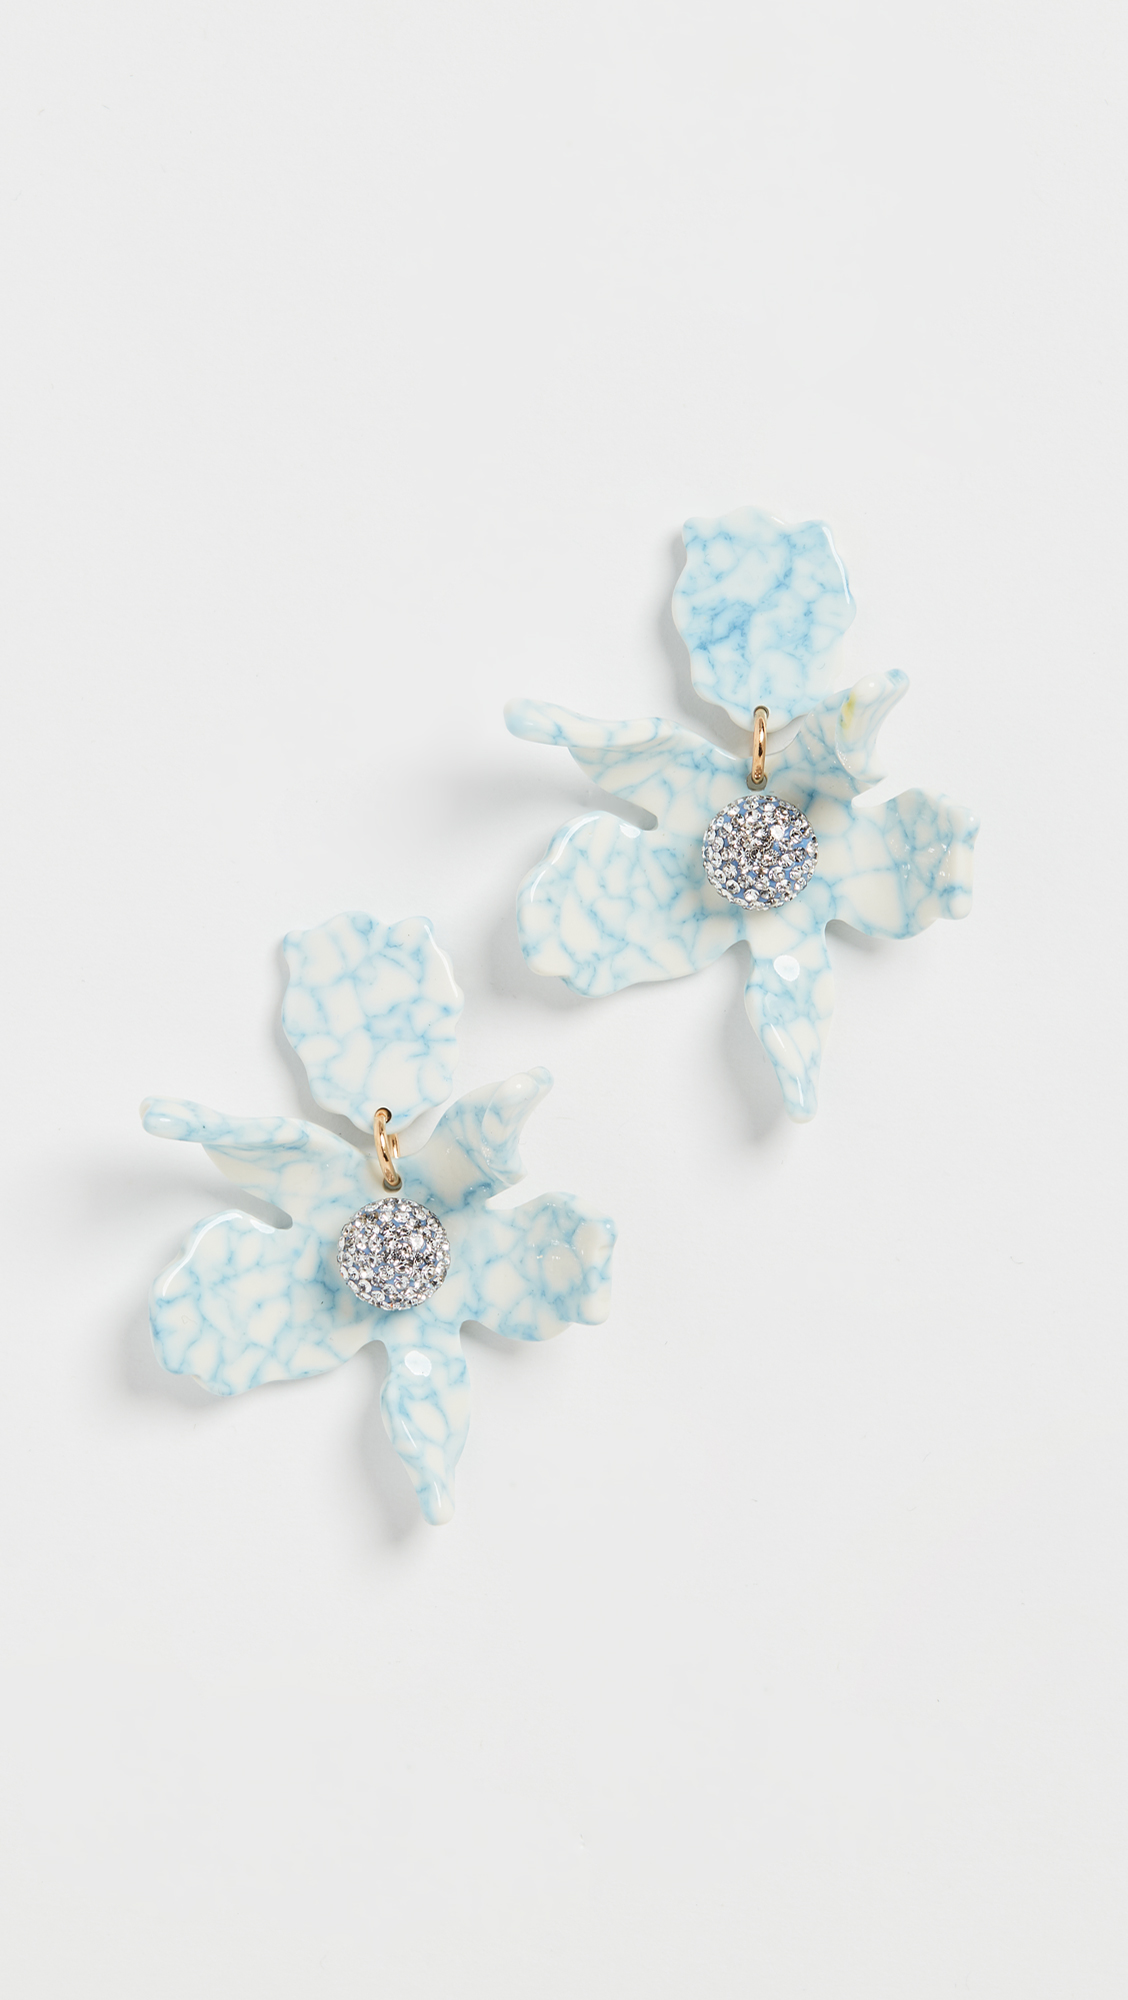 blue marble orchid flower shaped earrings with rhinestone centers